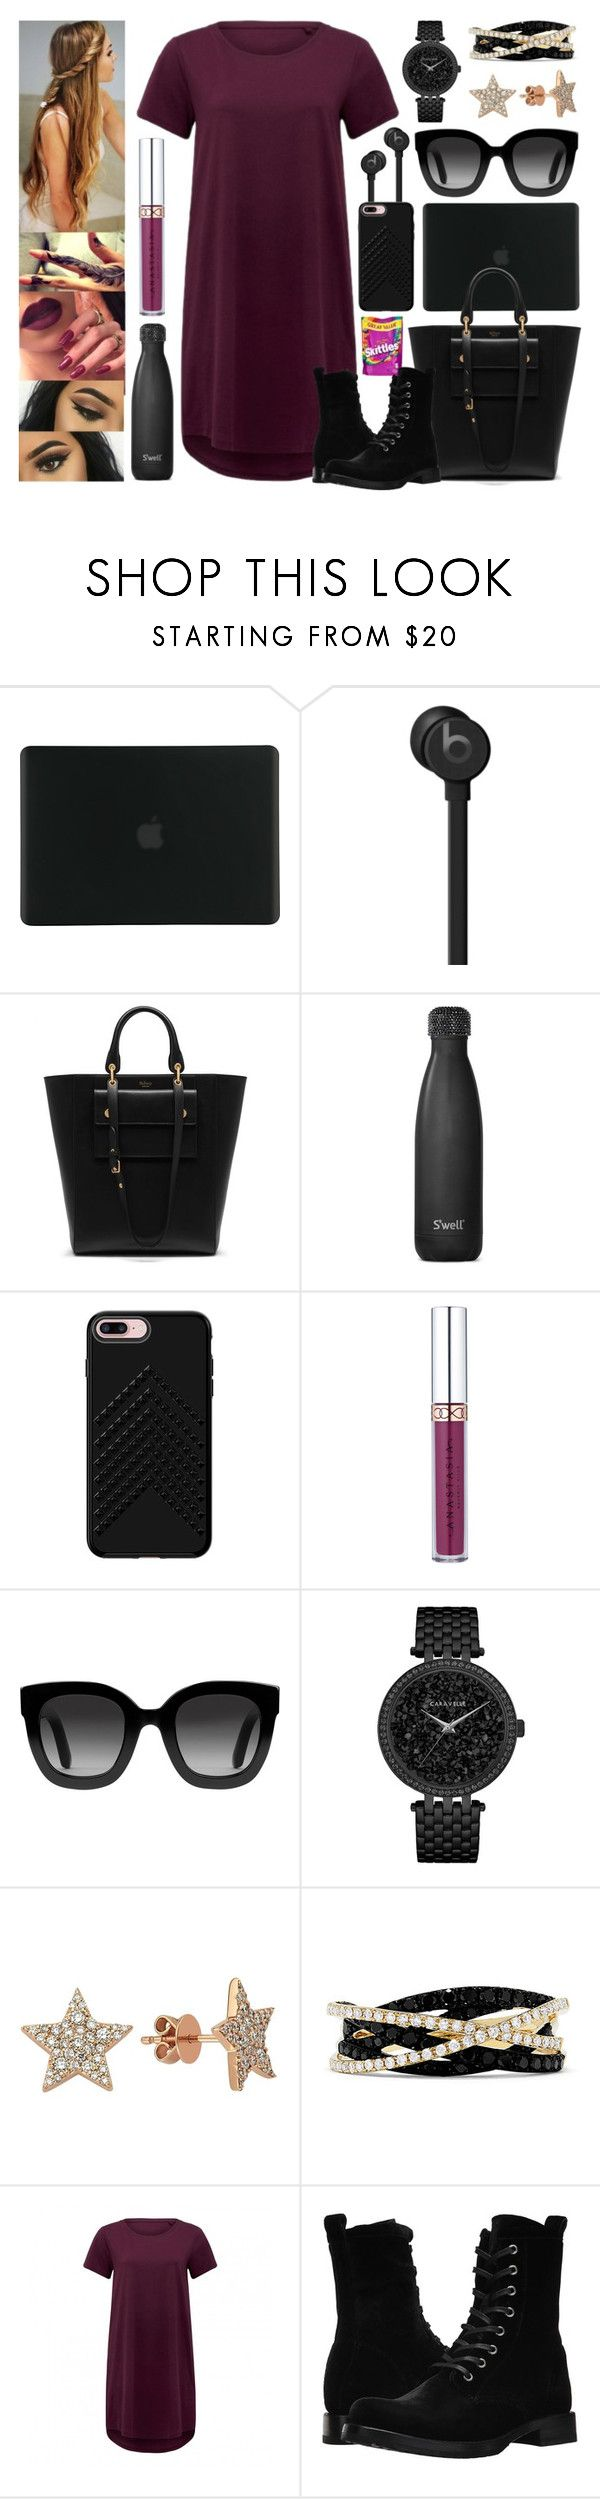 """""""Coffee Shop Look"""" by jessicagrewal ❤ liked on Polyvore featuring Tucano, Beats by Dr. Dre, Mulberry, S'well, Rebecca Minkoff, Gucci, Caravelle by Bulova, Bee Goddess, Effy Jewelry and Frye"""